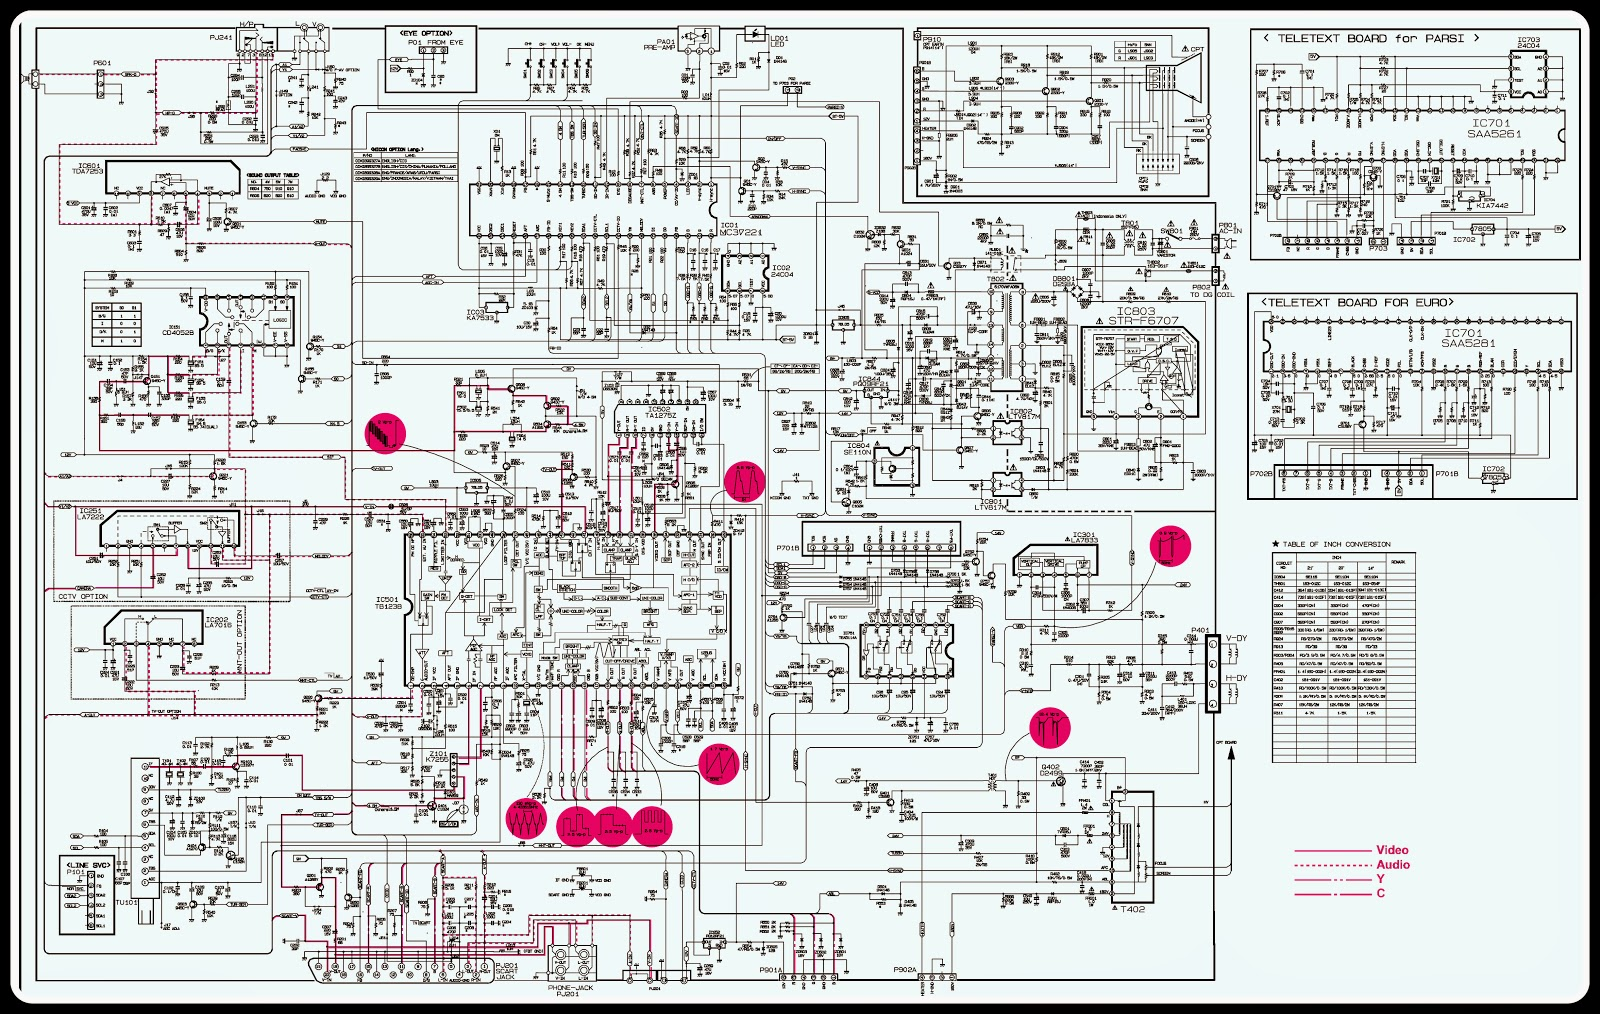 medium resolution of for mitsubishi tv schematics wiring diagram for you dish network receiver installation diagrams schematic diagram mitsubishi